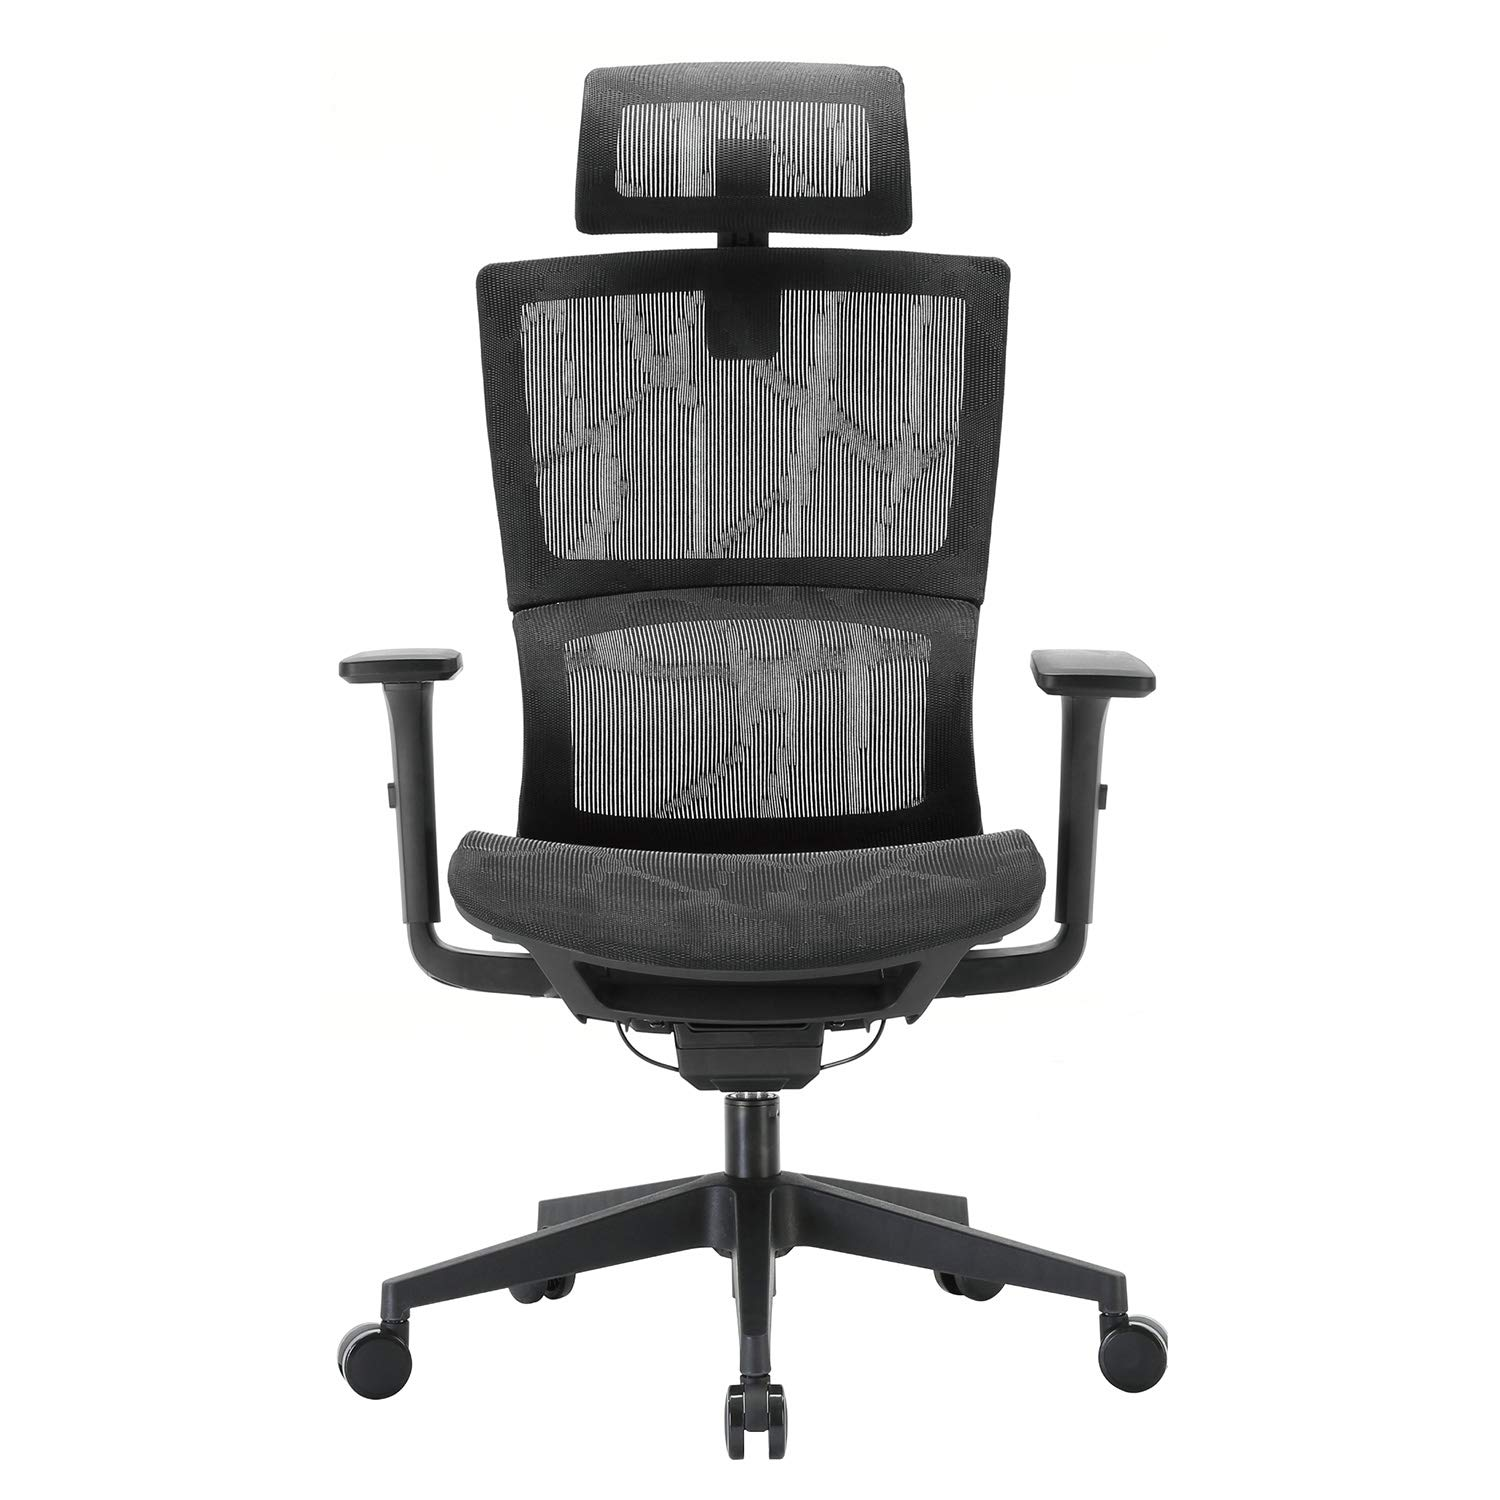 XUER Ergonomic Office Chair with Cozy Lumbar Support and Adjustable 3D Armrest, Computer Desk Chair with Mesh Seat and High Back, Multifunction for Relaxation (Black) by XUER